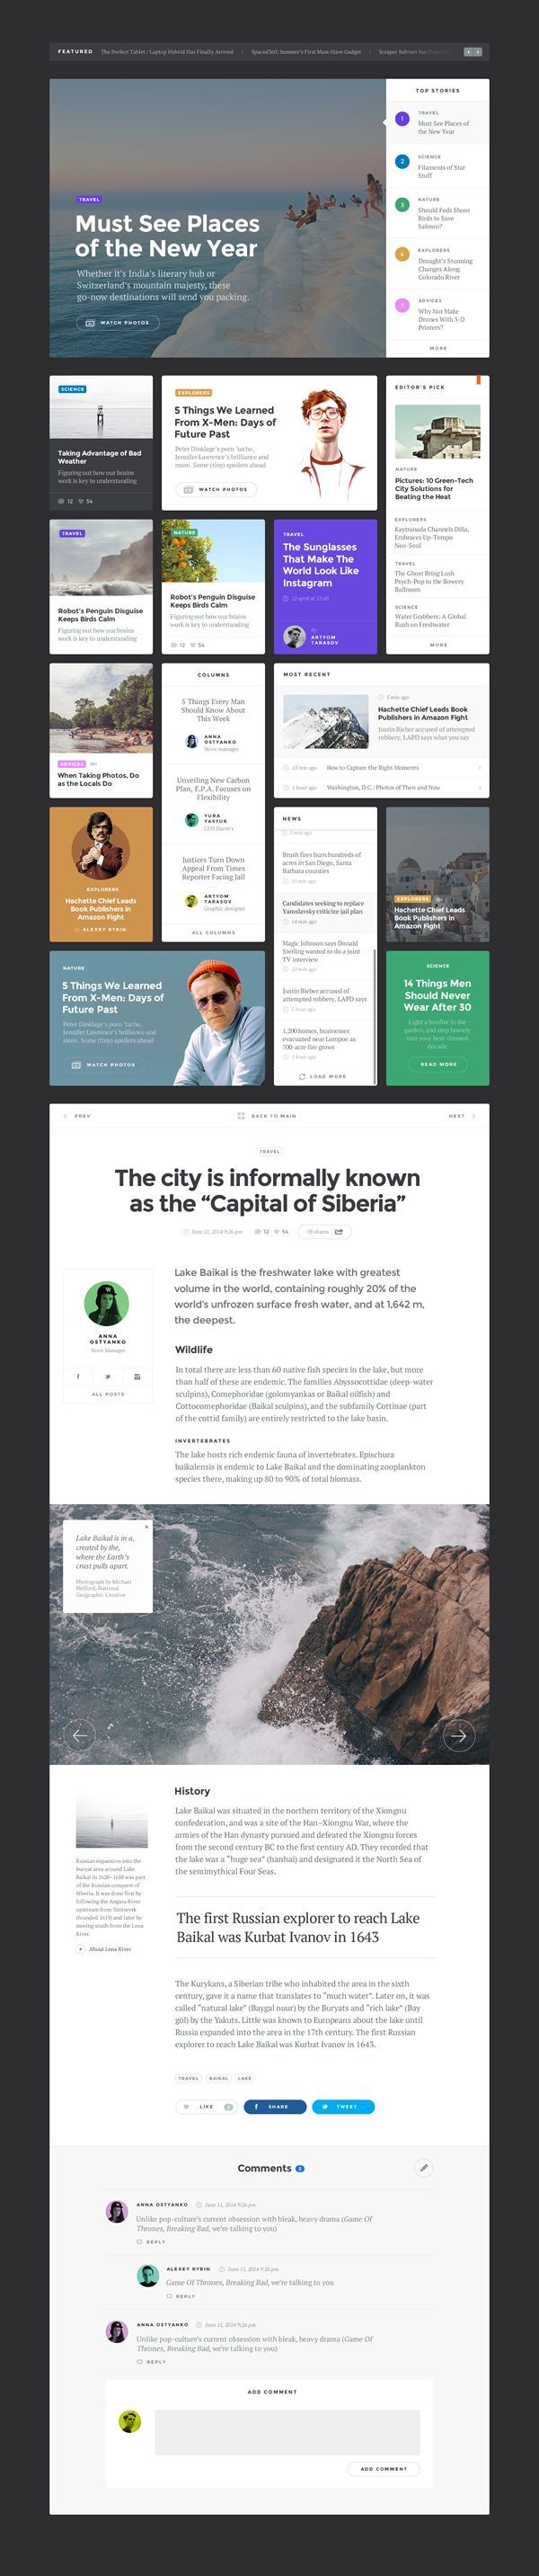 Baikal_blog_dark // Hi Friends, look what I just found on #web #design! Make sure to follow us @moirestudiosjkt to see more pins like this   Moire Studios is a thriving website and graphic design studio based in Jakarta, Indonesia. (scheduled via http://www.tailwindapp.com?utm_source=pinterest&utm_medium=twpin&utm_content=post9914312&utm_campaign=scheduler_attribution)